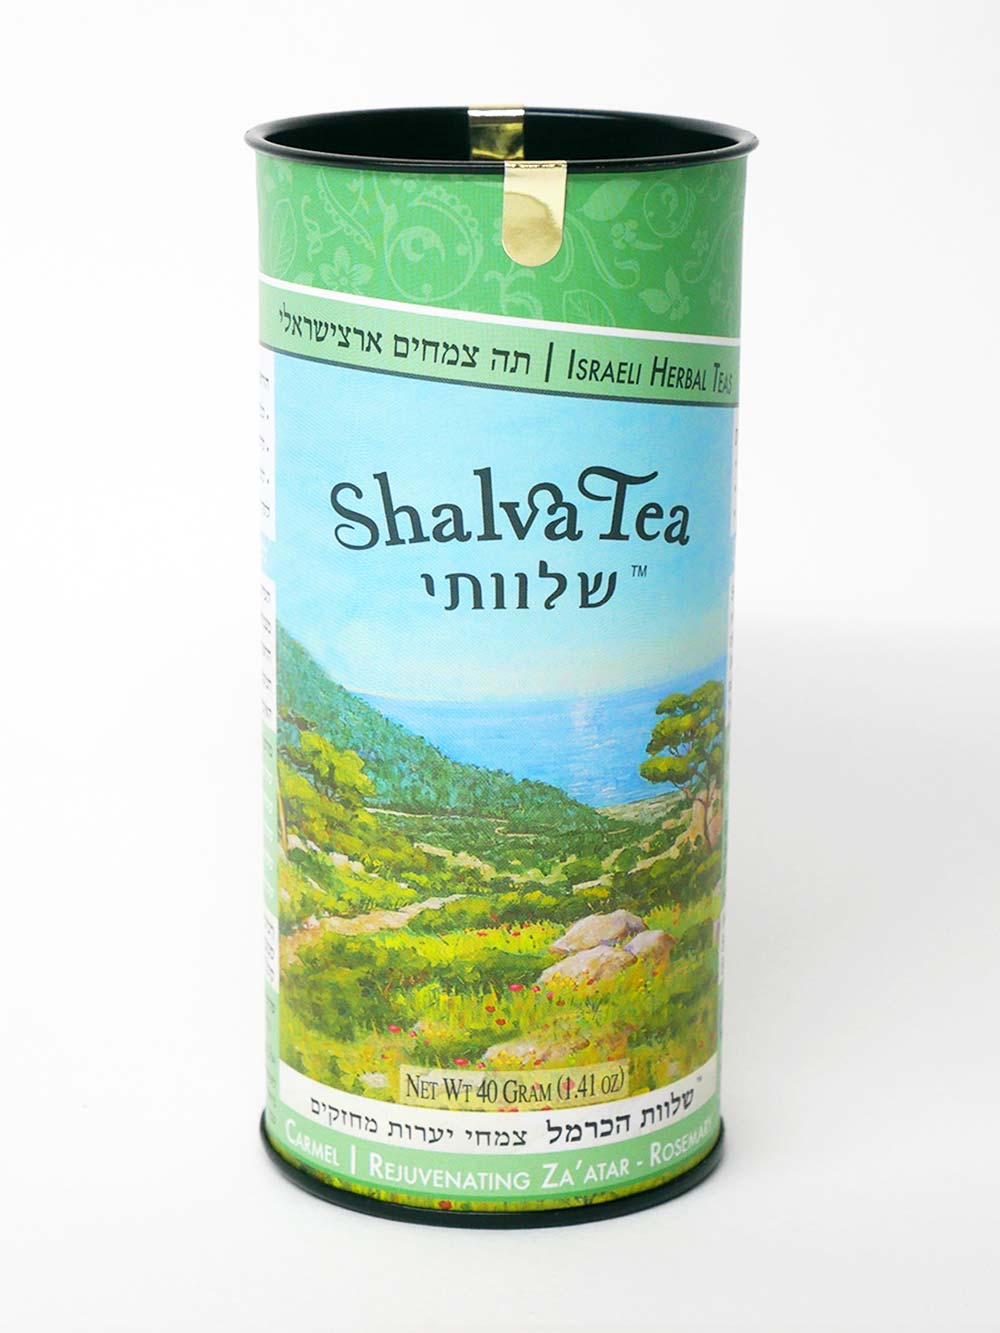 Rejuvenating Za'atar-Rosemary | Carmel Blend (20 Teabags) - ShalvaTea Kosher Israeli Herbal Teas